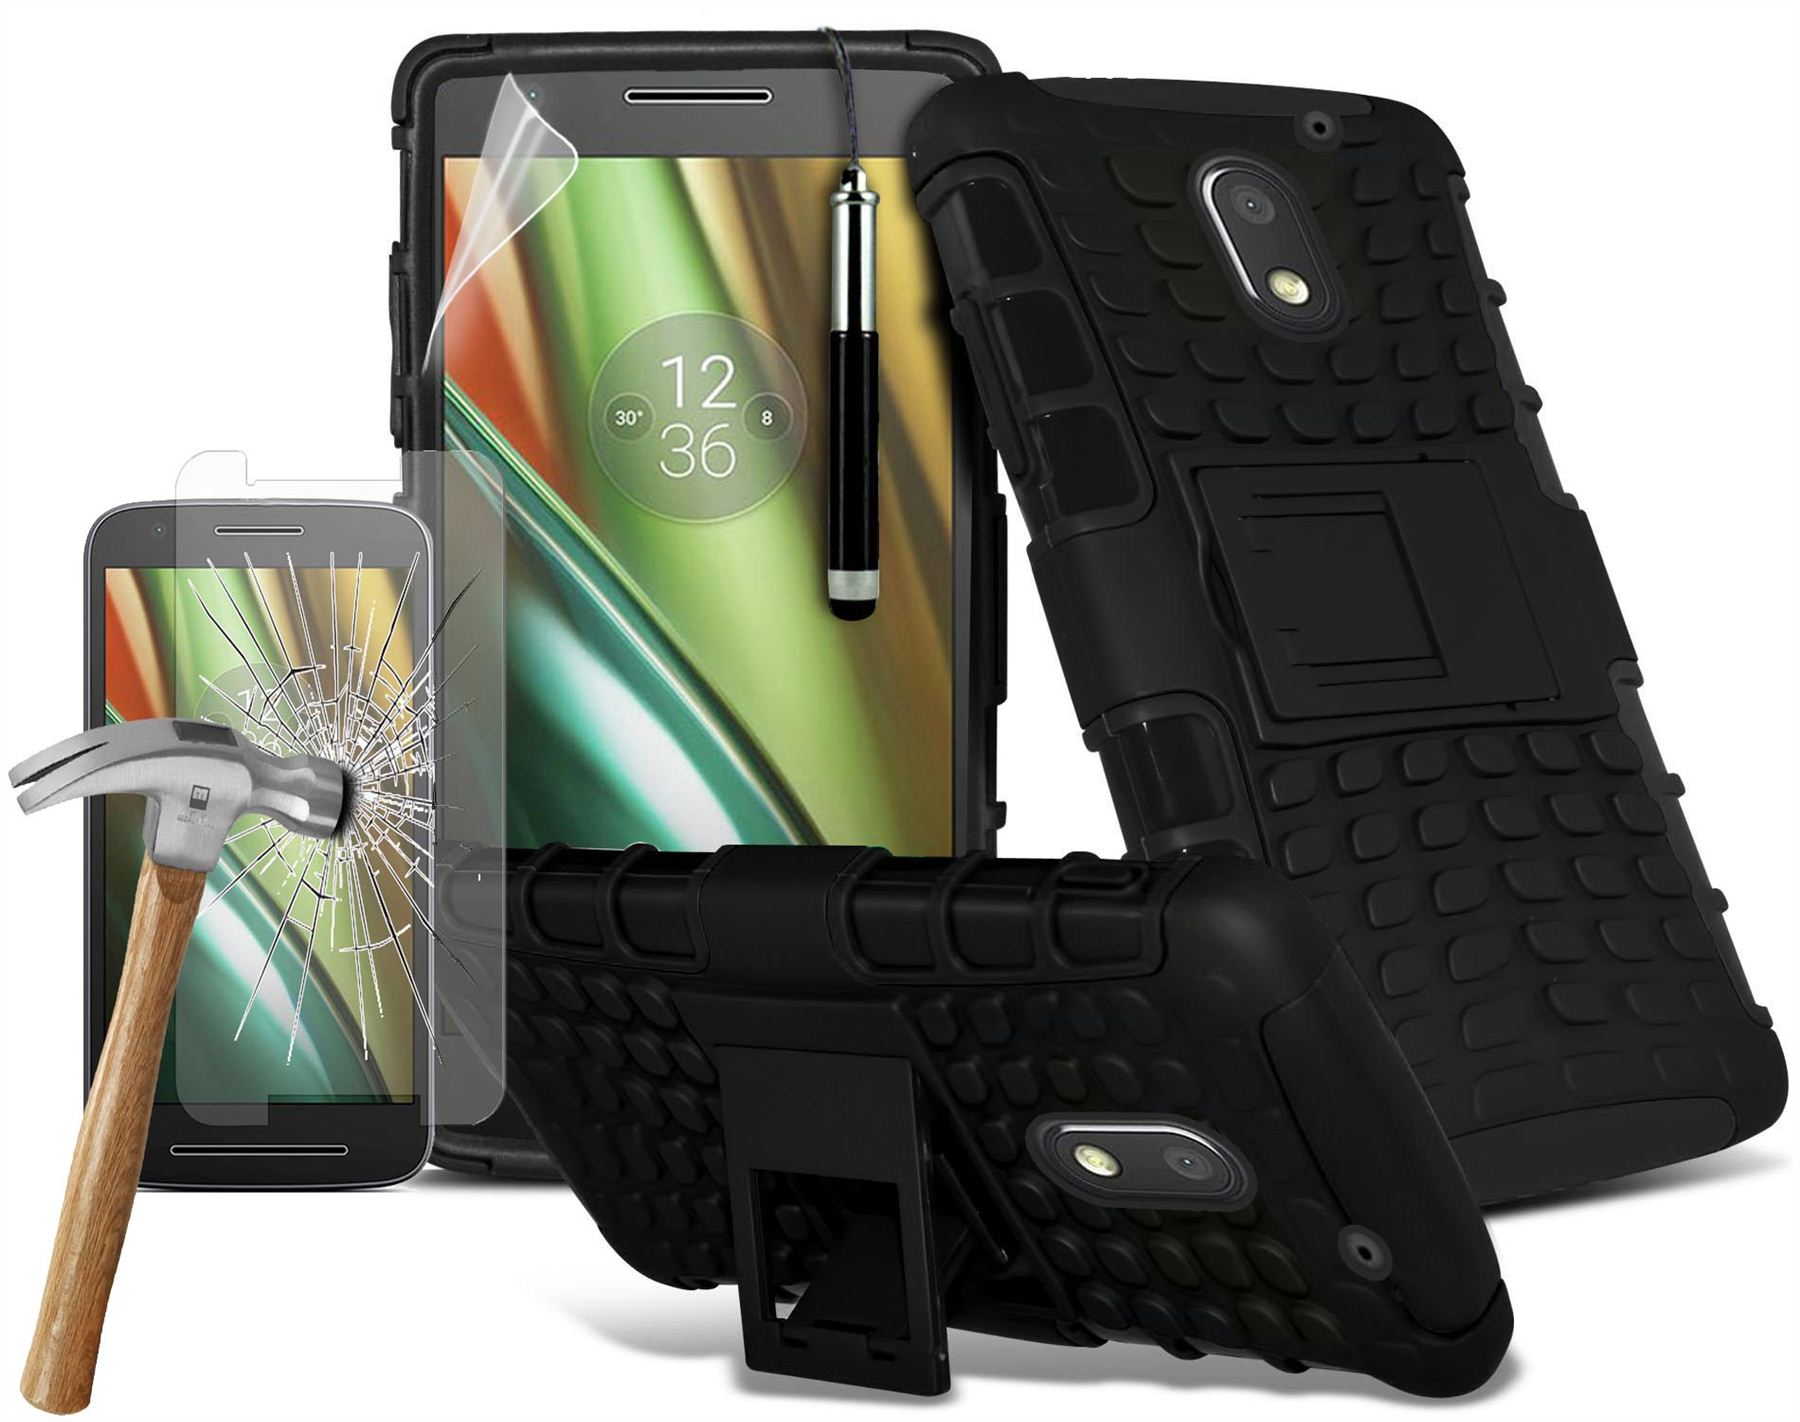 Motorola-Moto-E3-Dual-Layer-Tough-Shockproof-Armour-Case-amp-Tempered-Glass